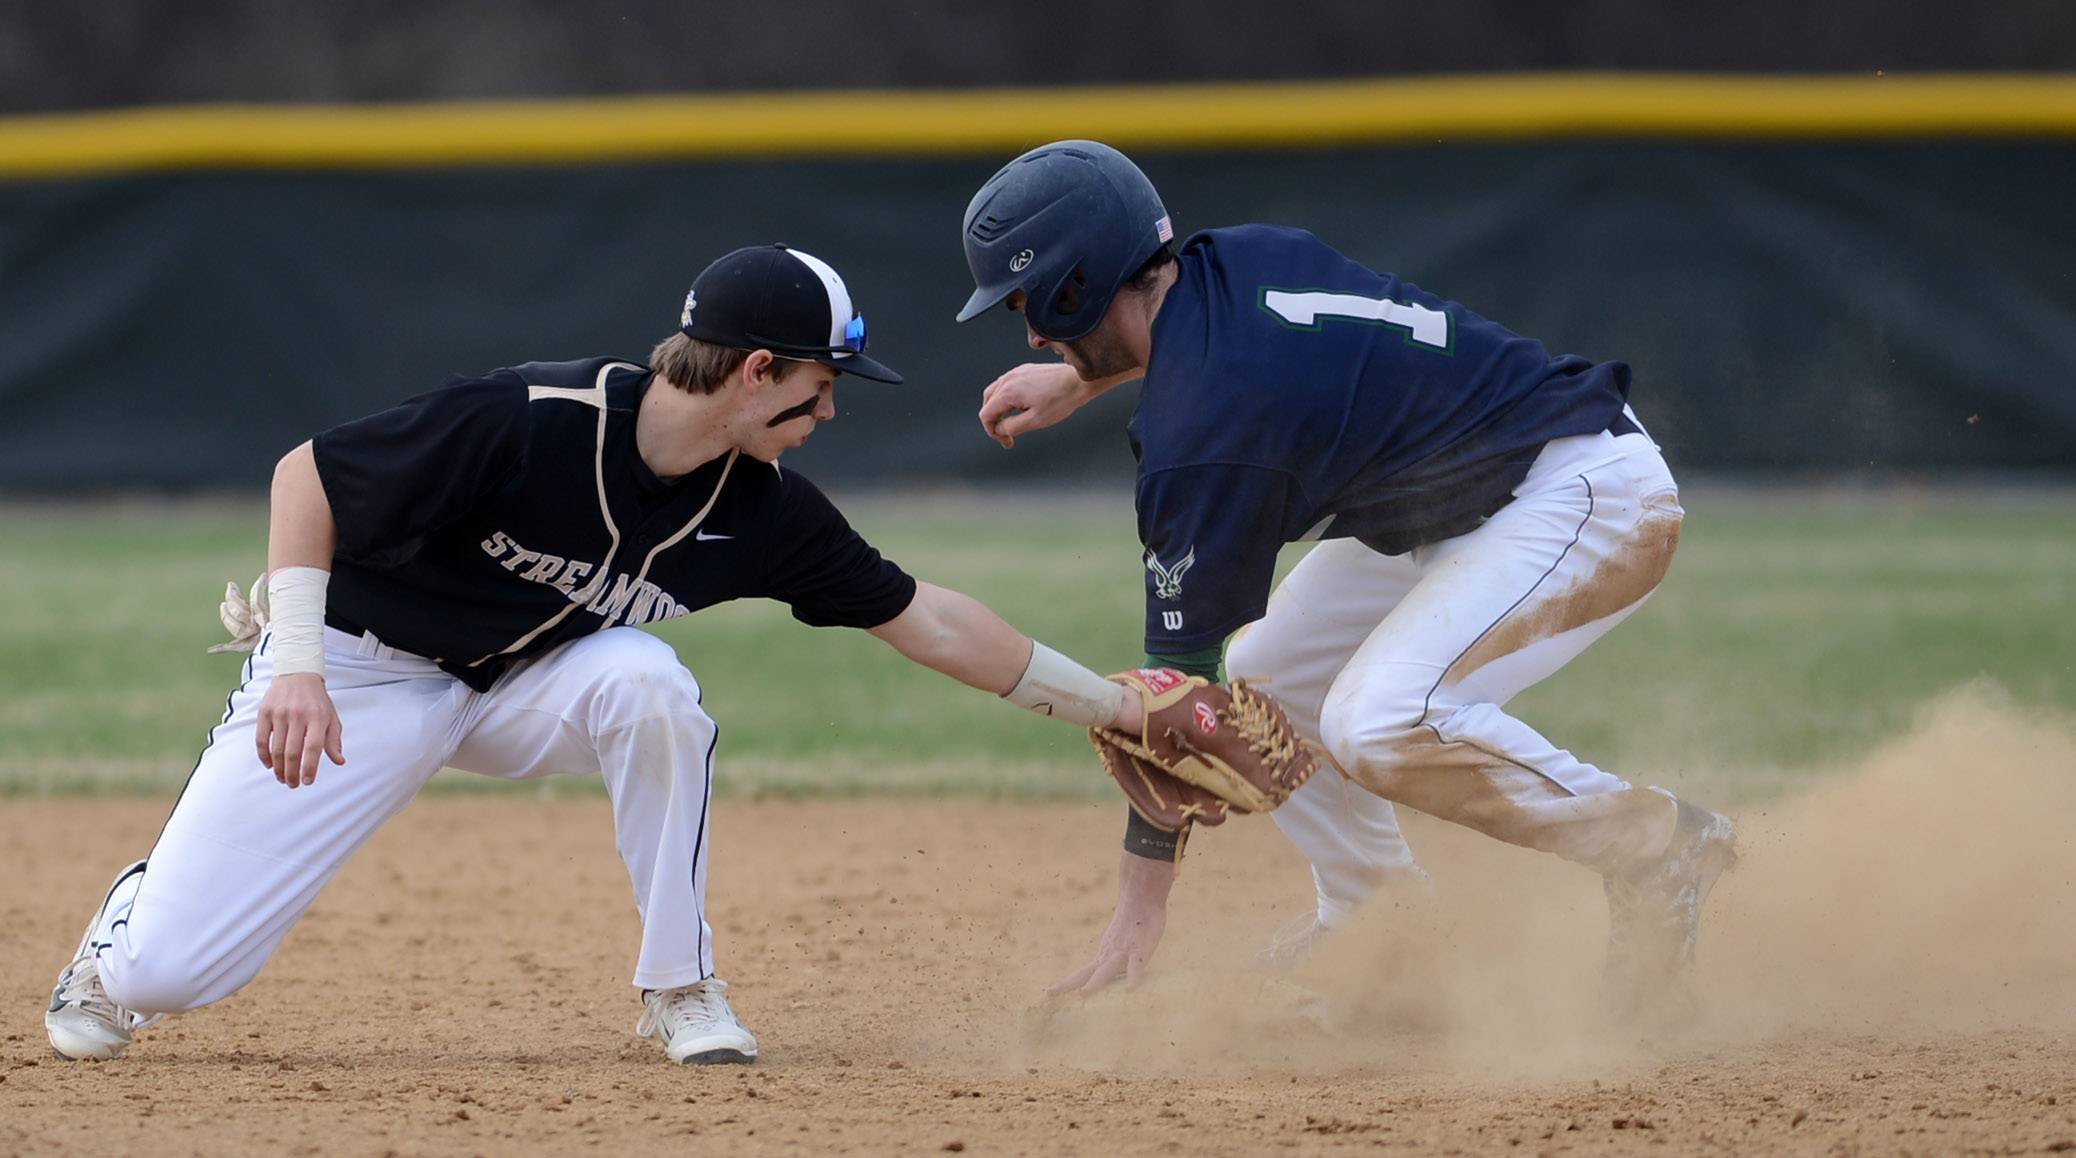 Streamwood's Chad Caminitti turns and swipes a tag but Bartlett's Mike Wick (1) is already safe at second with a steal during Thursday's game in Bartlett.